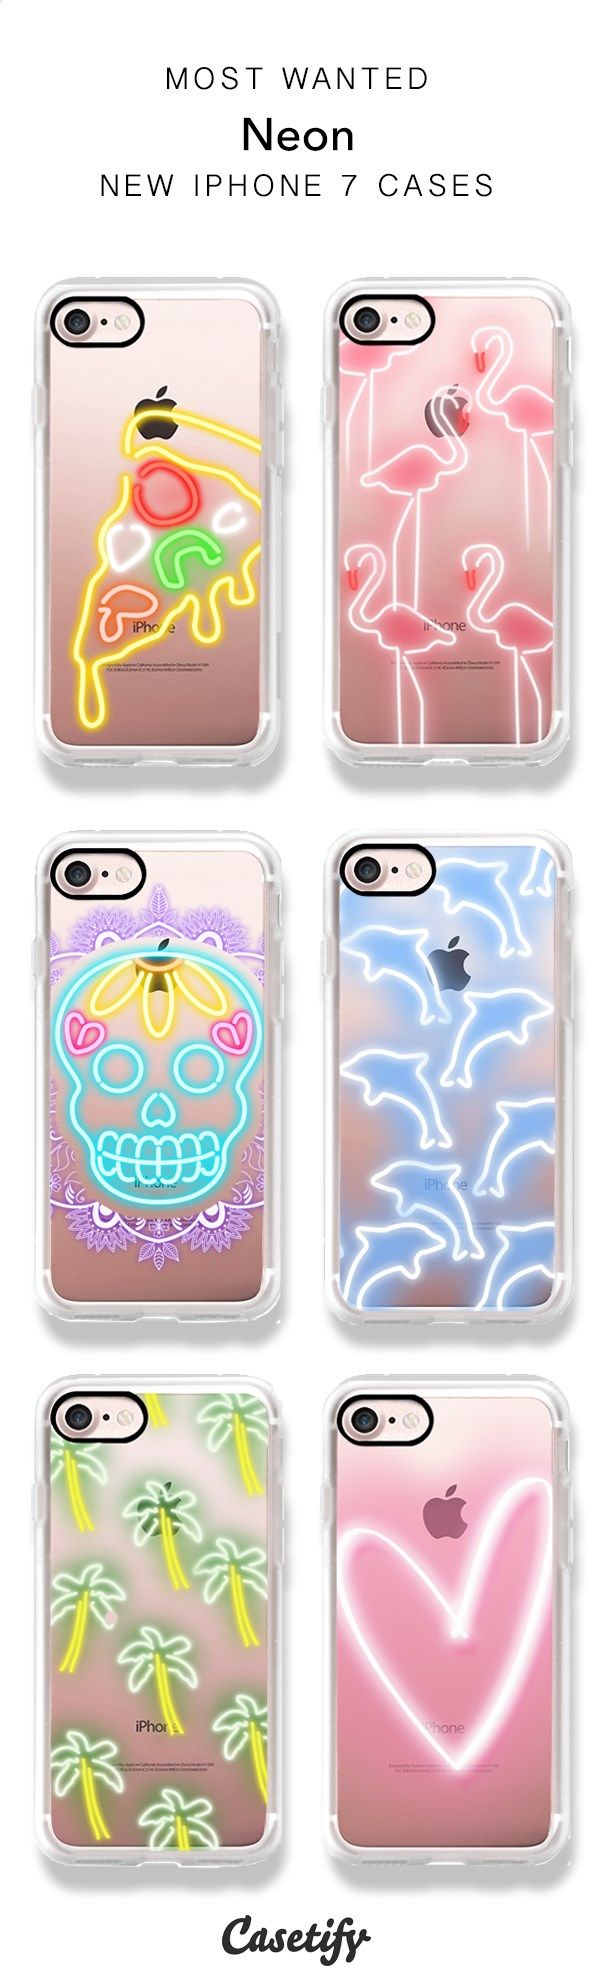 Light it up! Neon clear iPhone cases. Available for iPhone 7/7 plus/6/6s/5. Shop the Neon Collection here > www.casetify.com/...